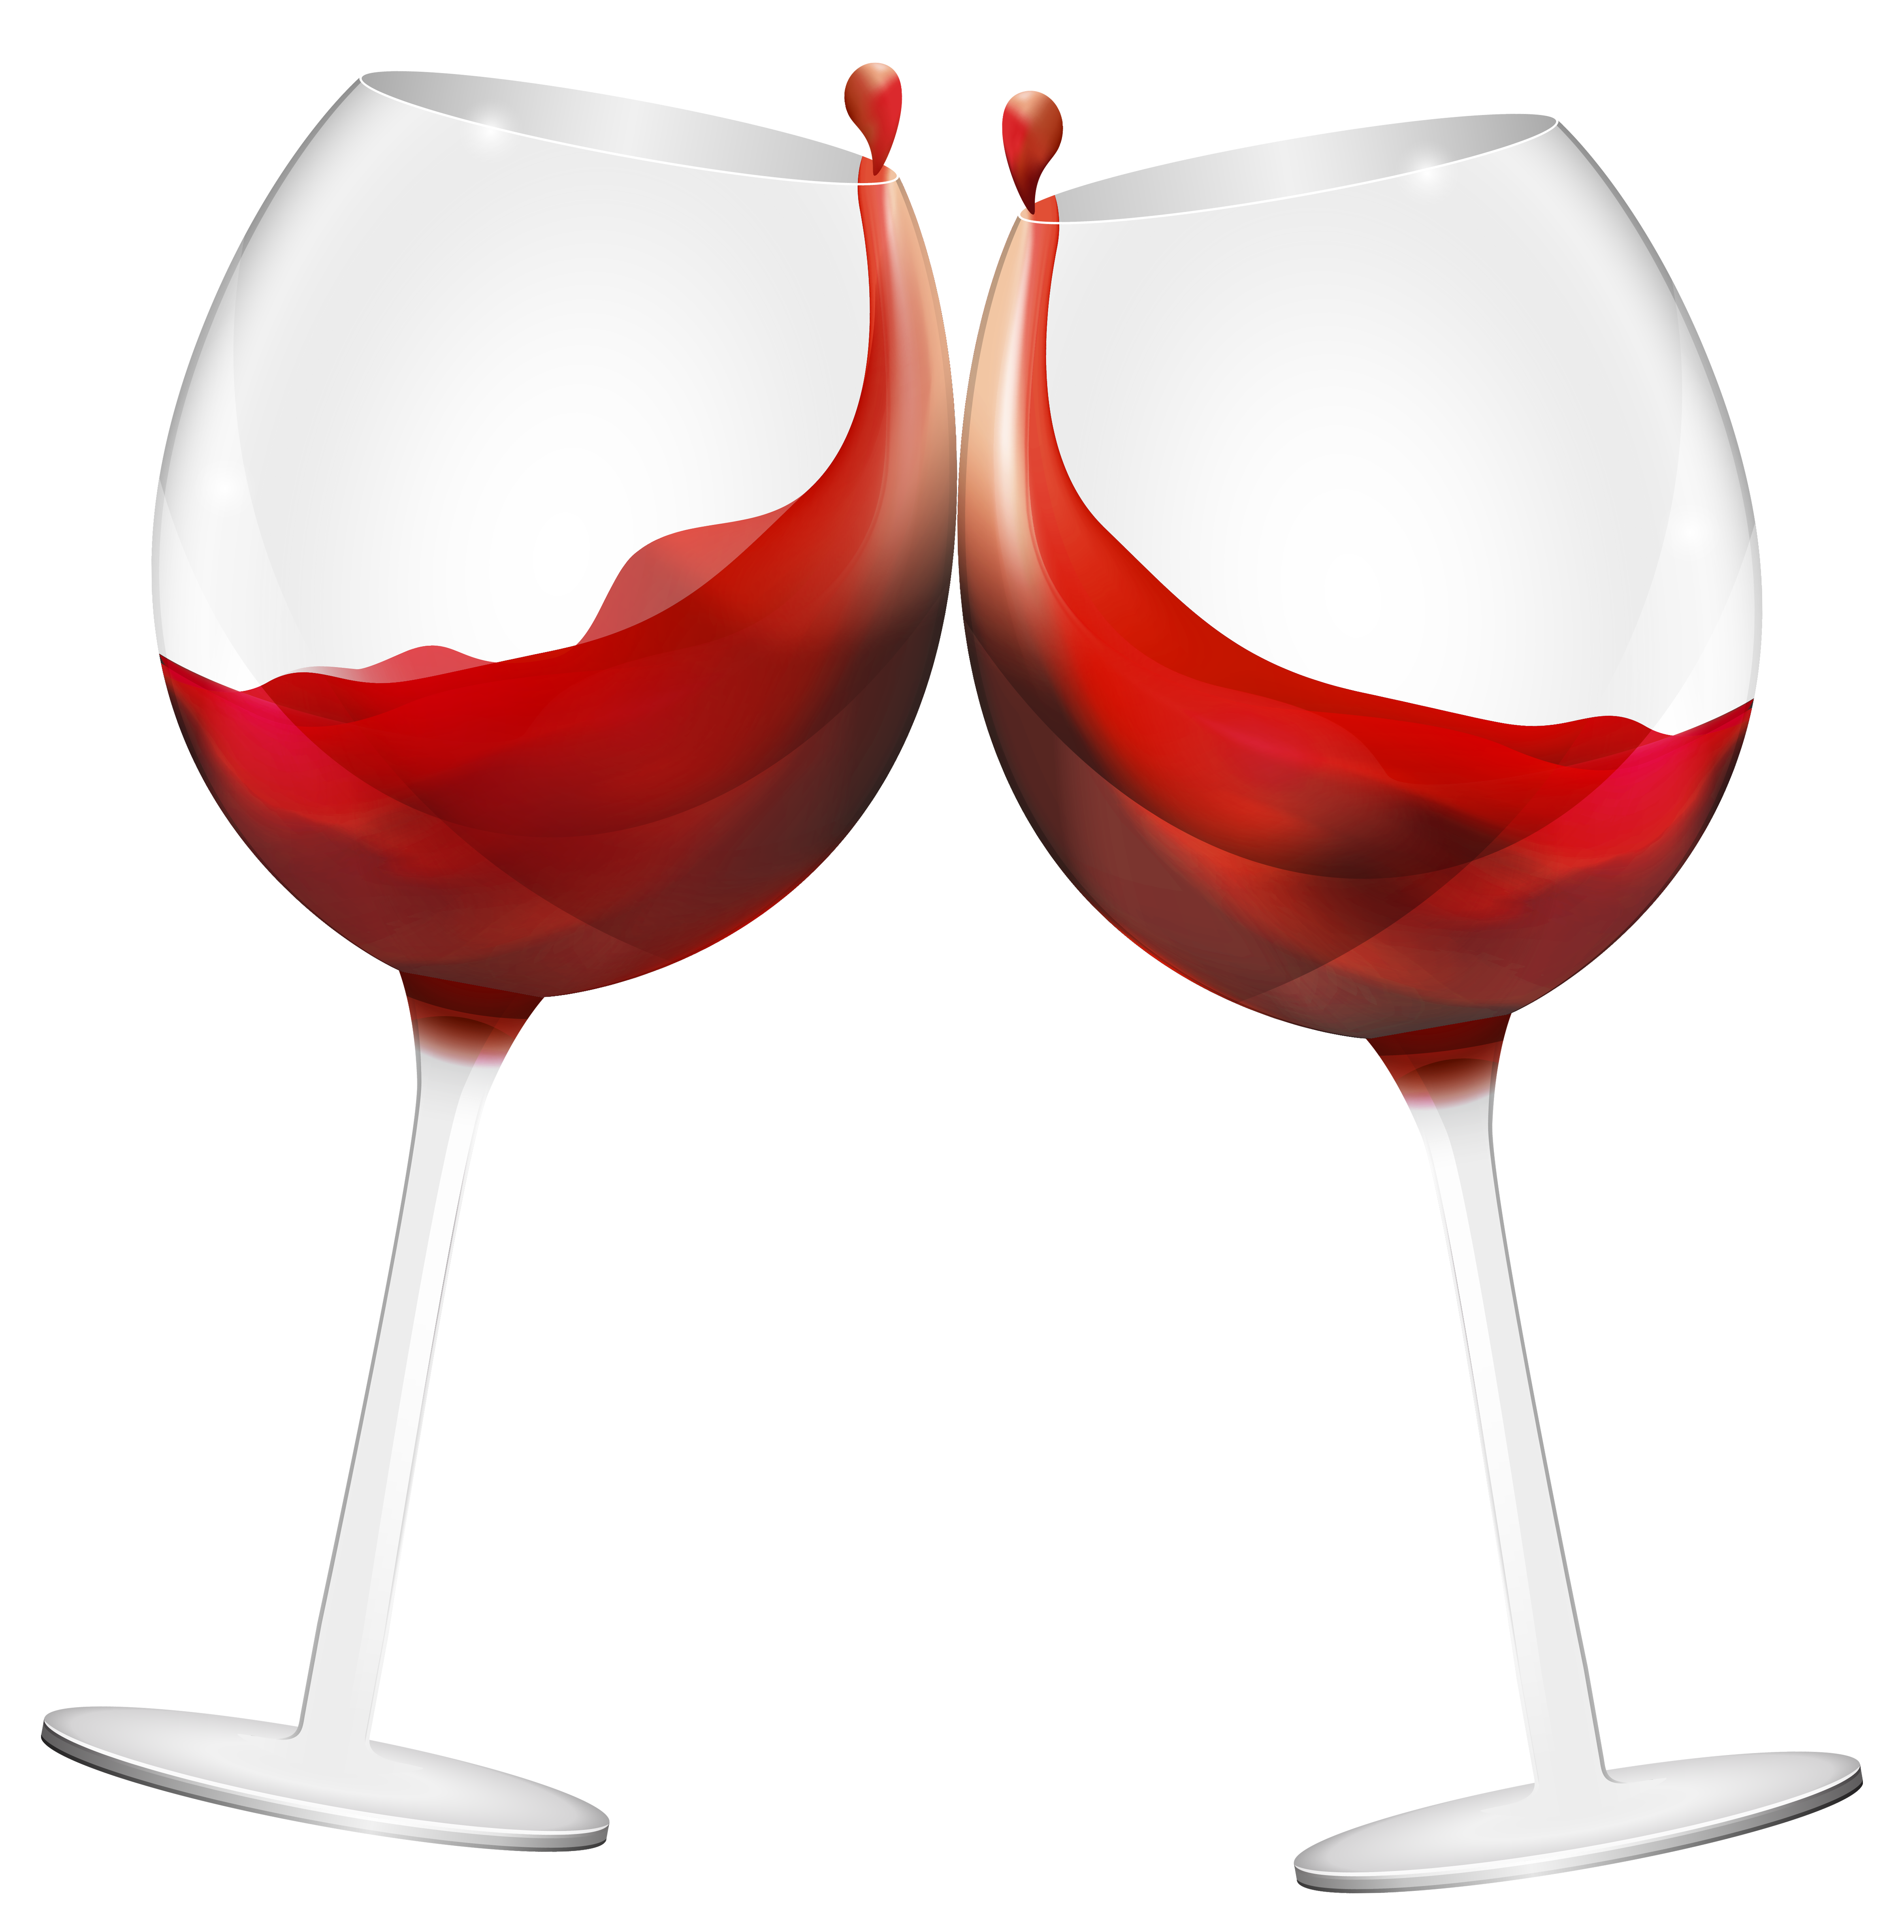 ... free clip art wine glasses | BOFI MENA ...